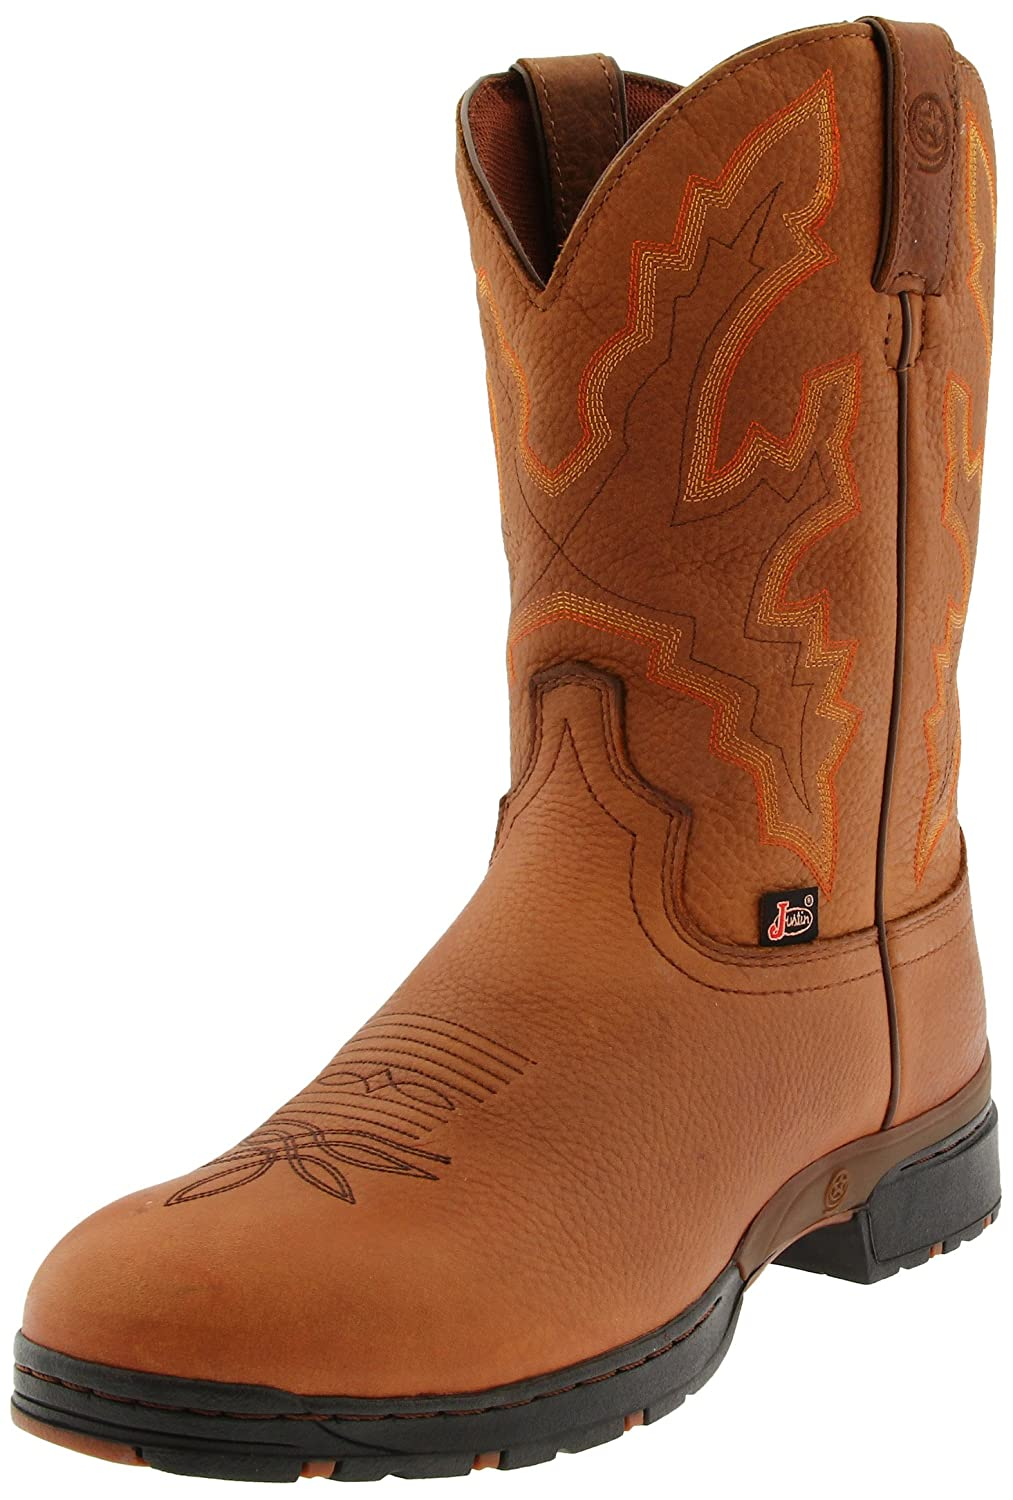 333de306574 Amazon.com | Justin Boots Men's George Strait 3.1 Round-toe Boot ...